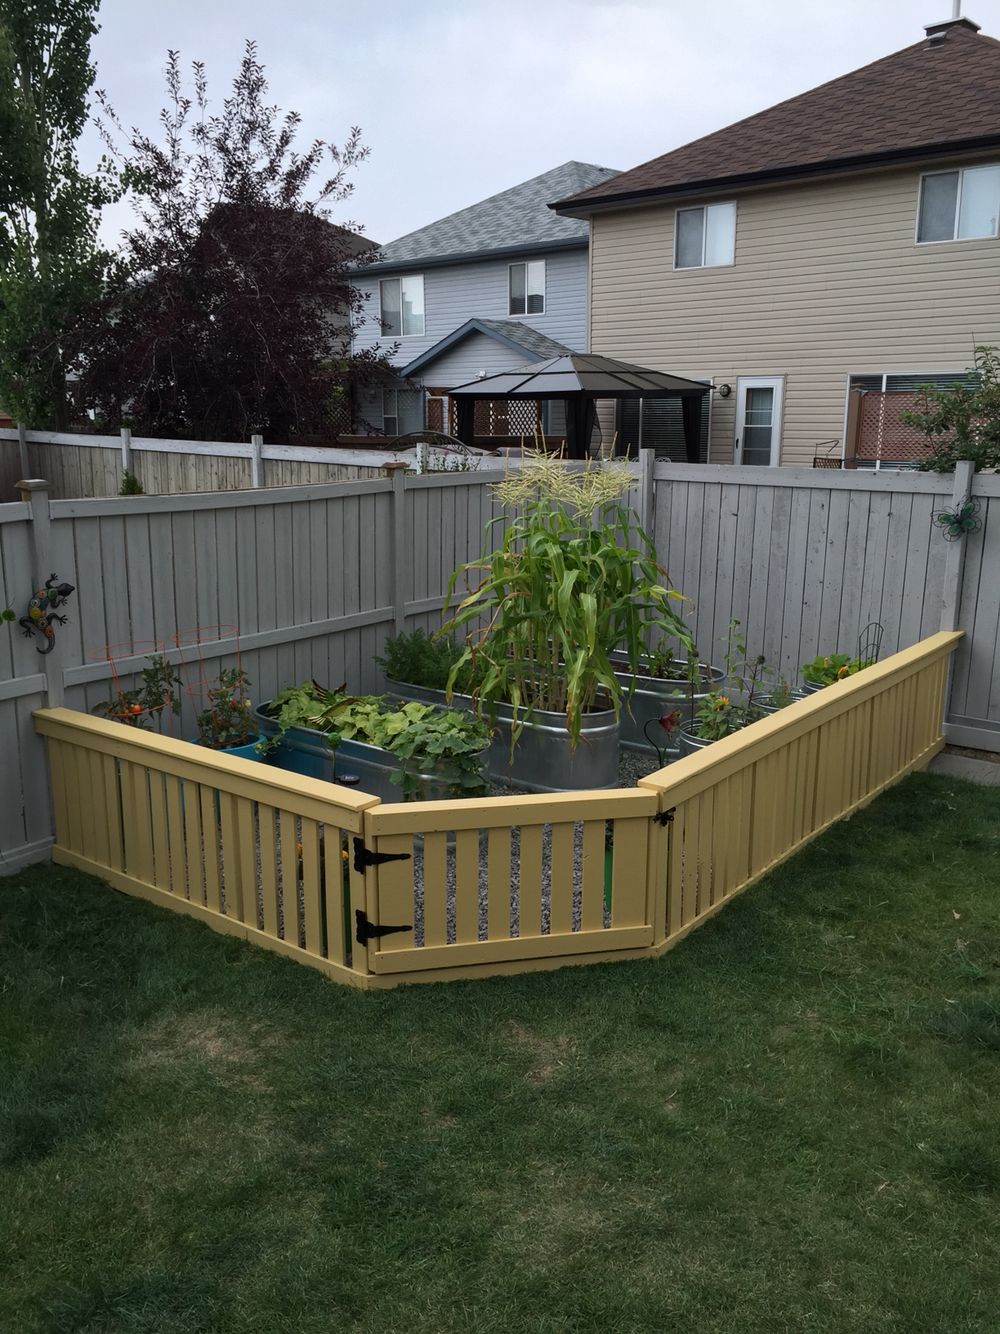 Raised bed garden and fence Raised bed